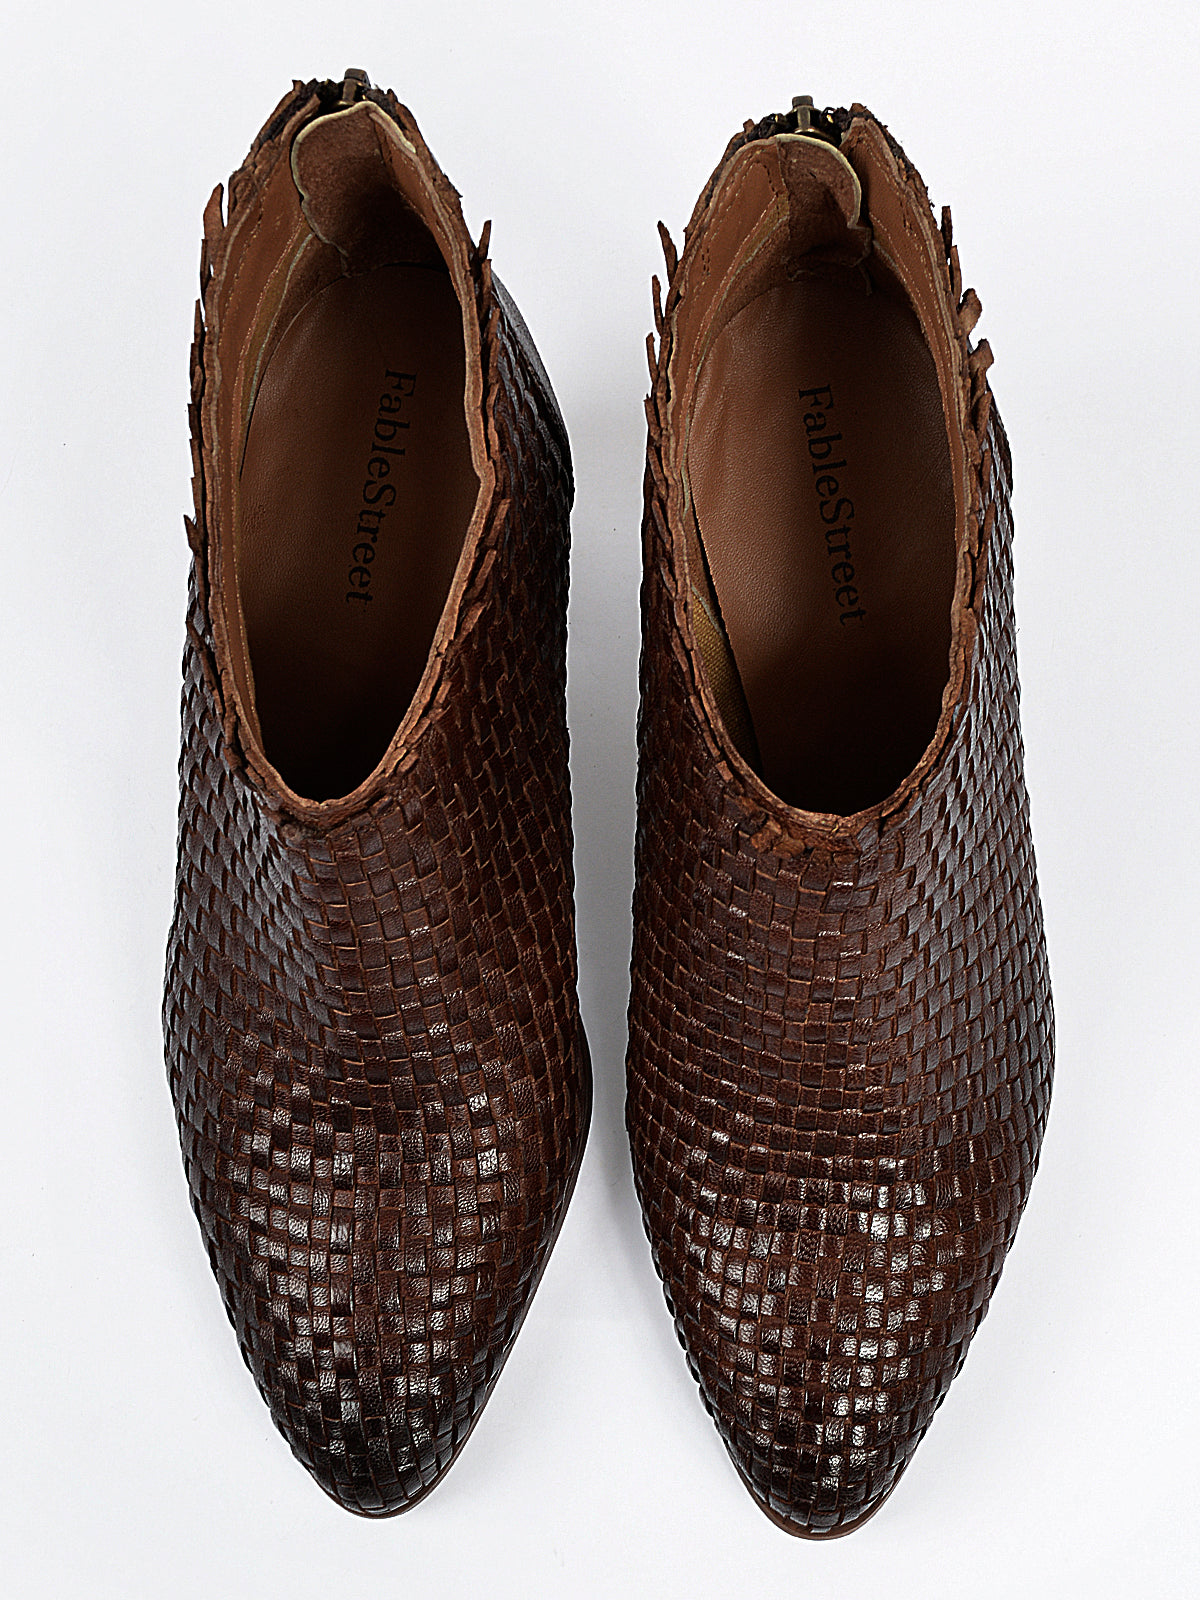 Basket Weave Leather Heeled Boots - Brown